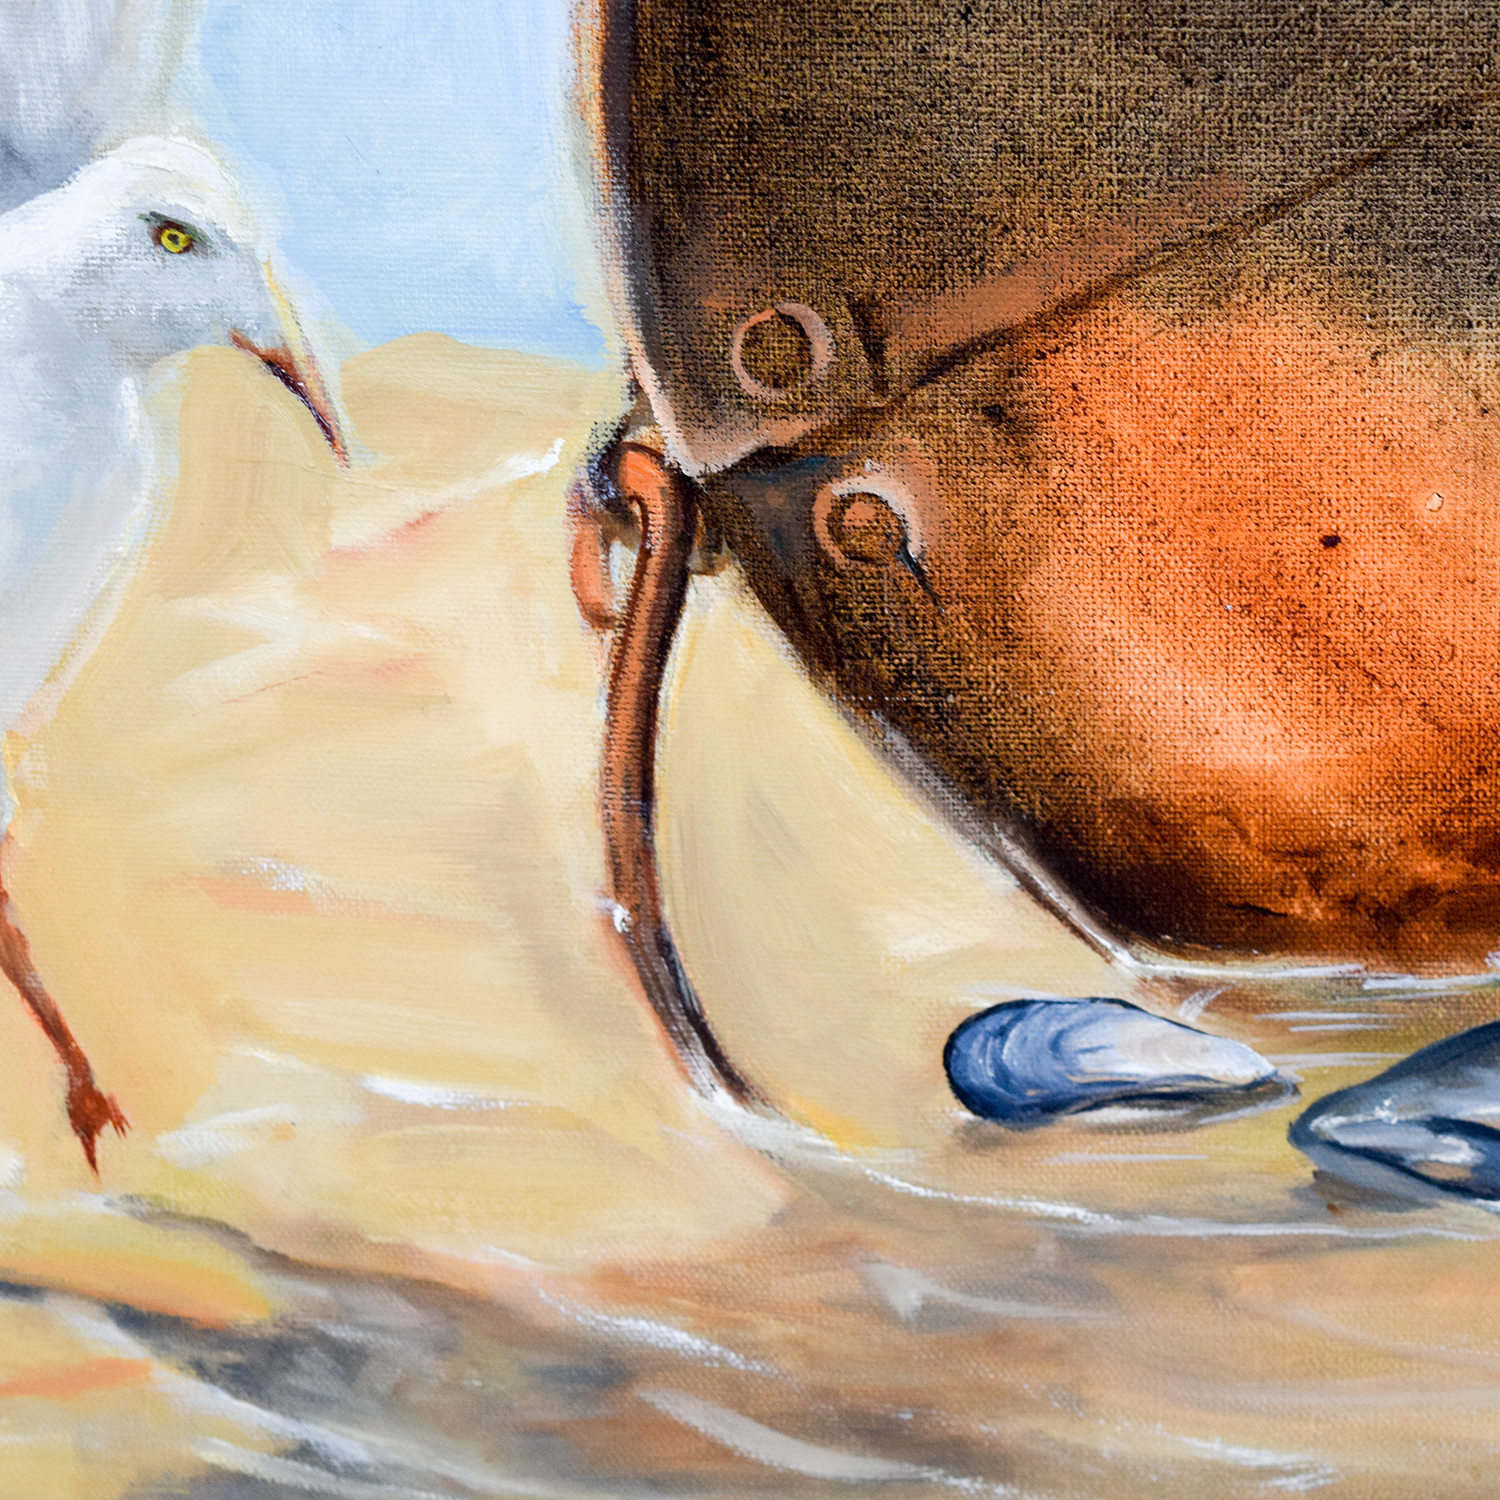 Three Seagulls with Oyster Bucket on Beach Painting coupon